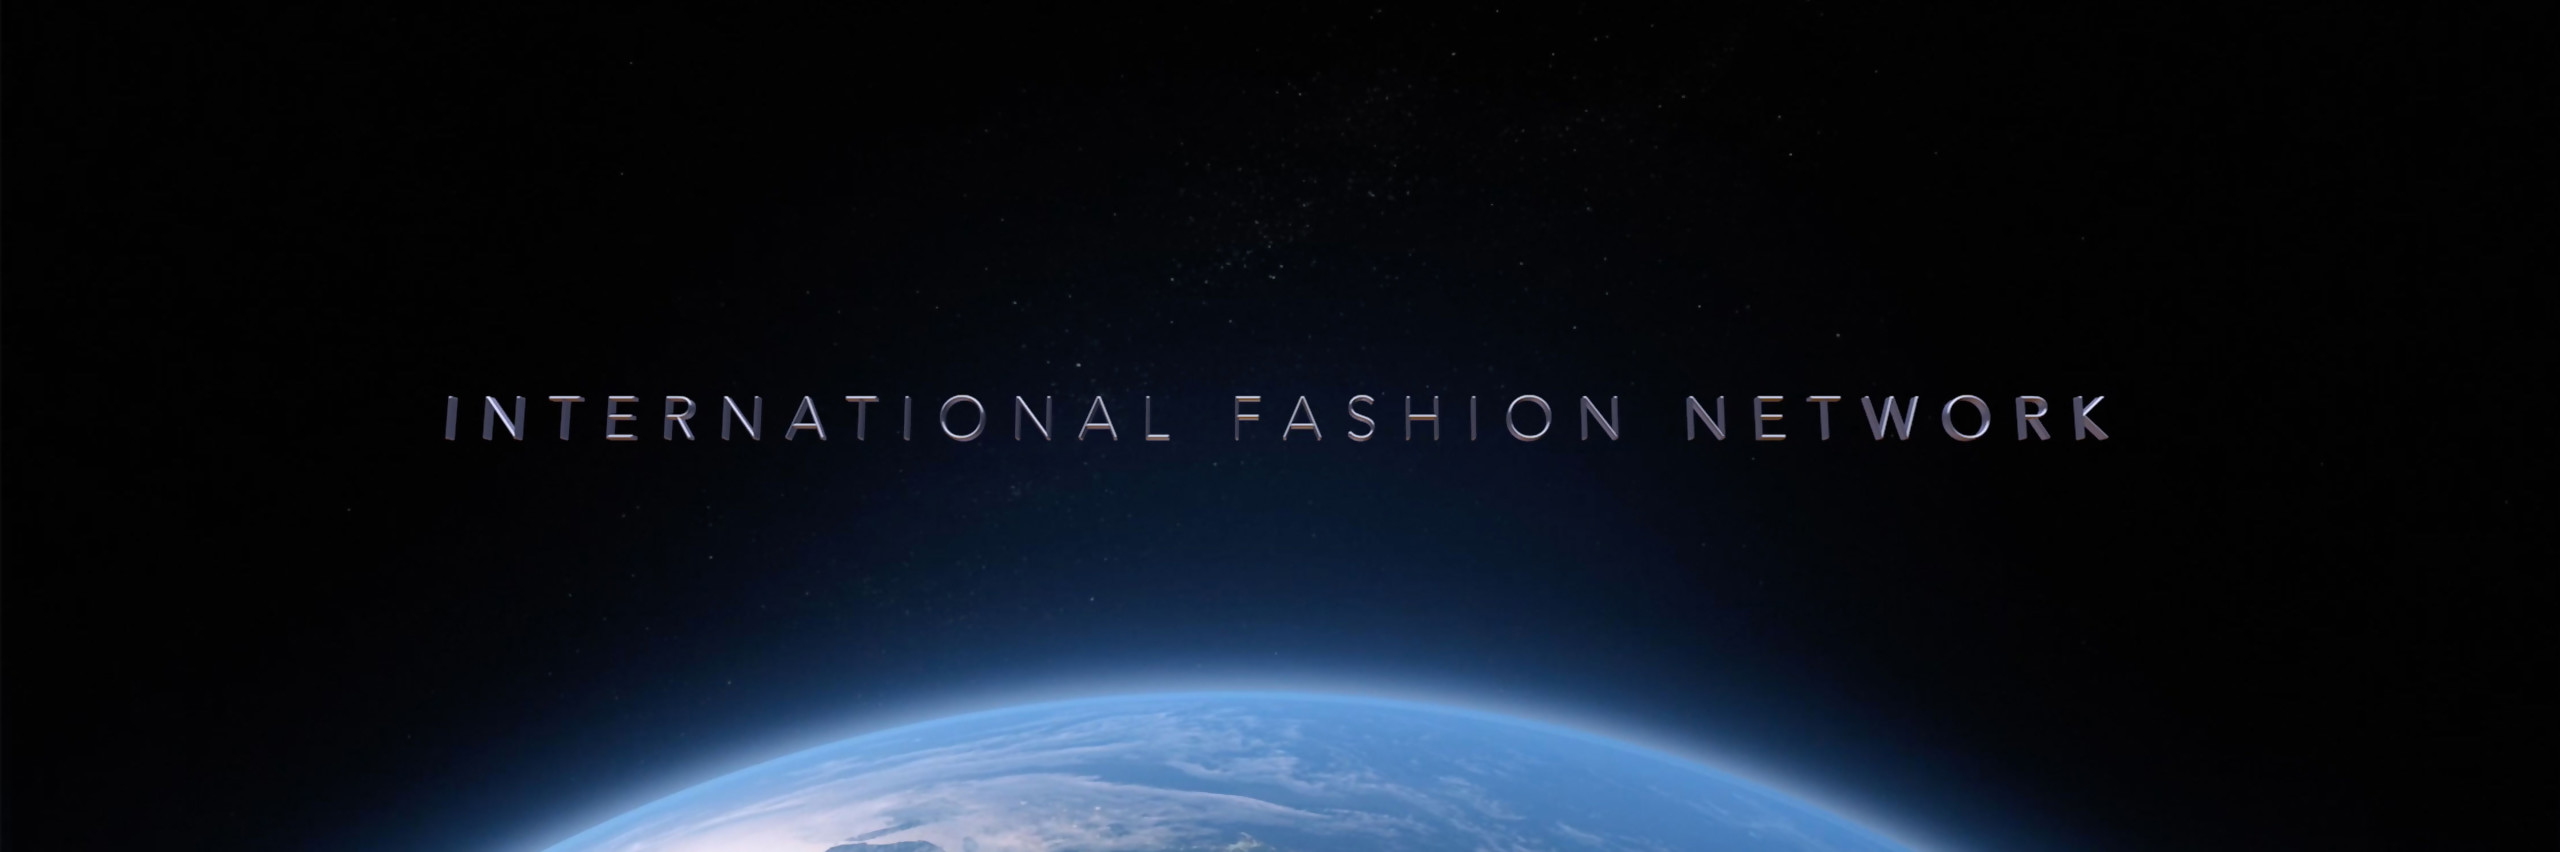 International Fashion Network